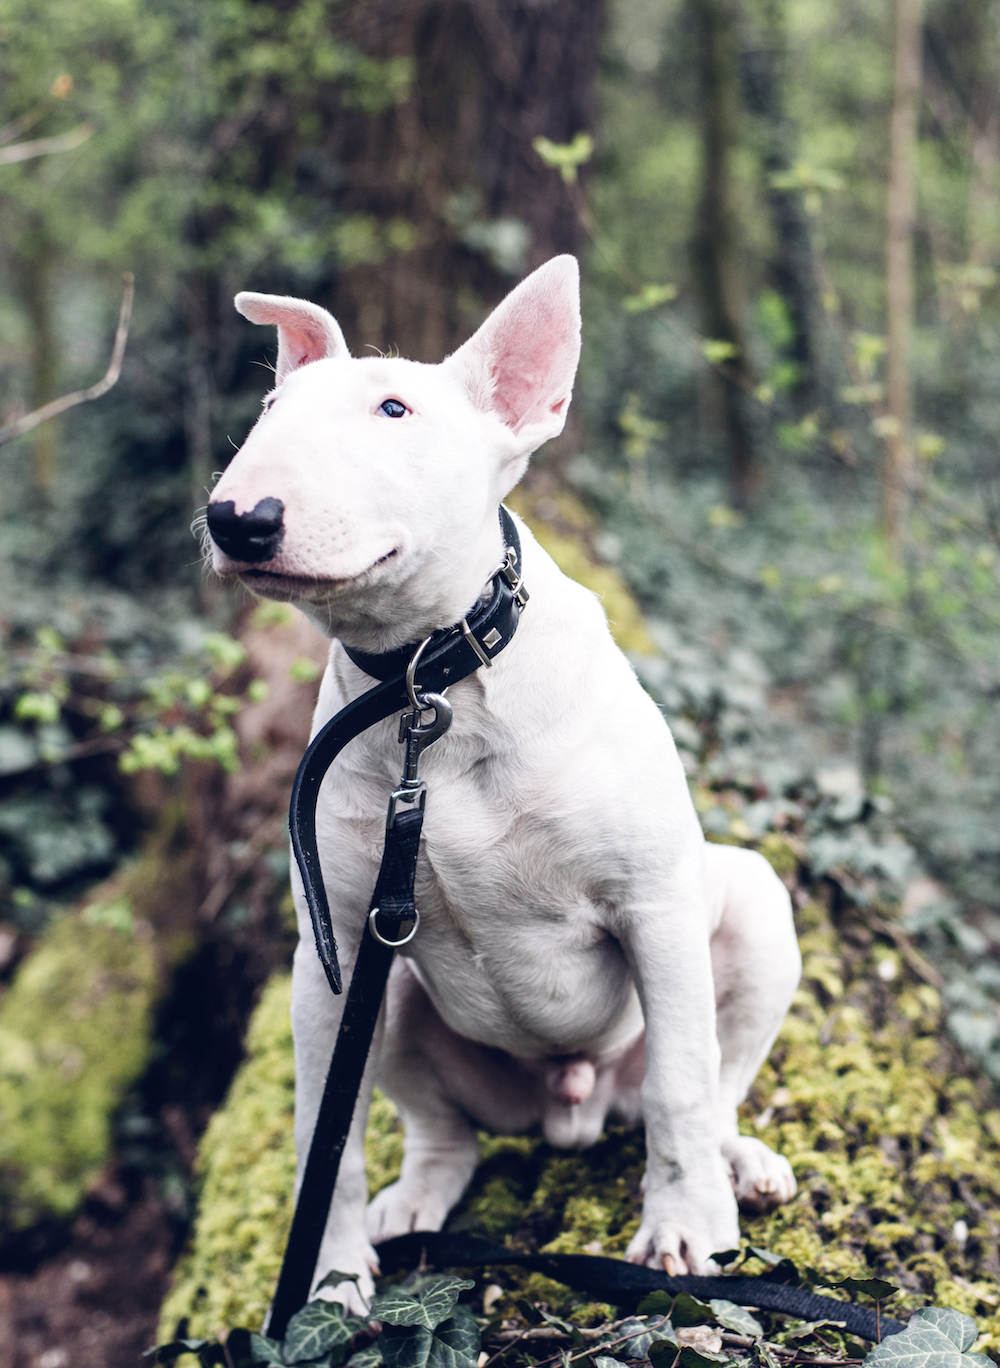 White bull terrier dog on leash sitting on tree trunk looking up